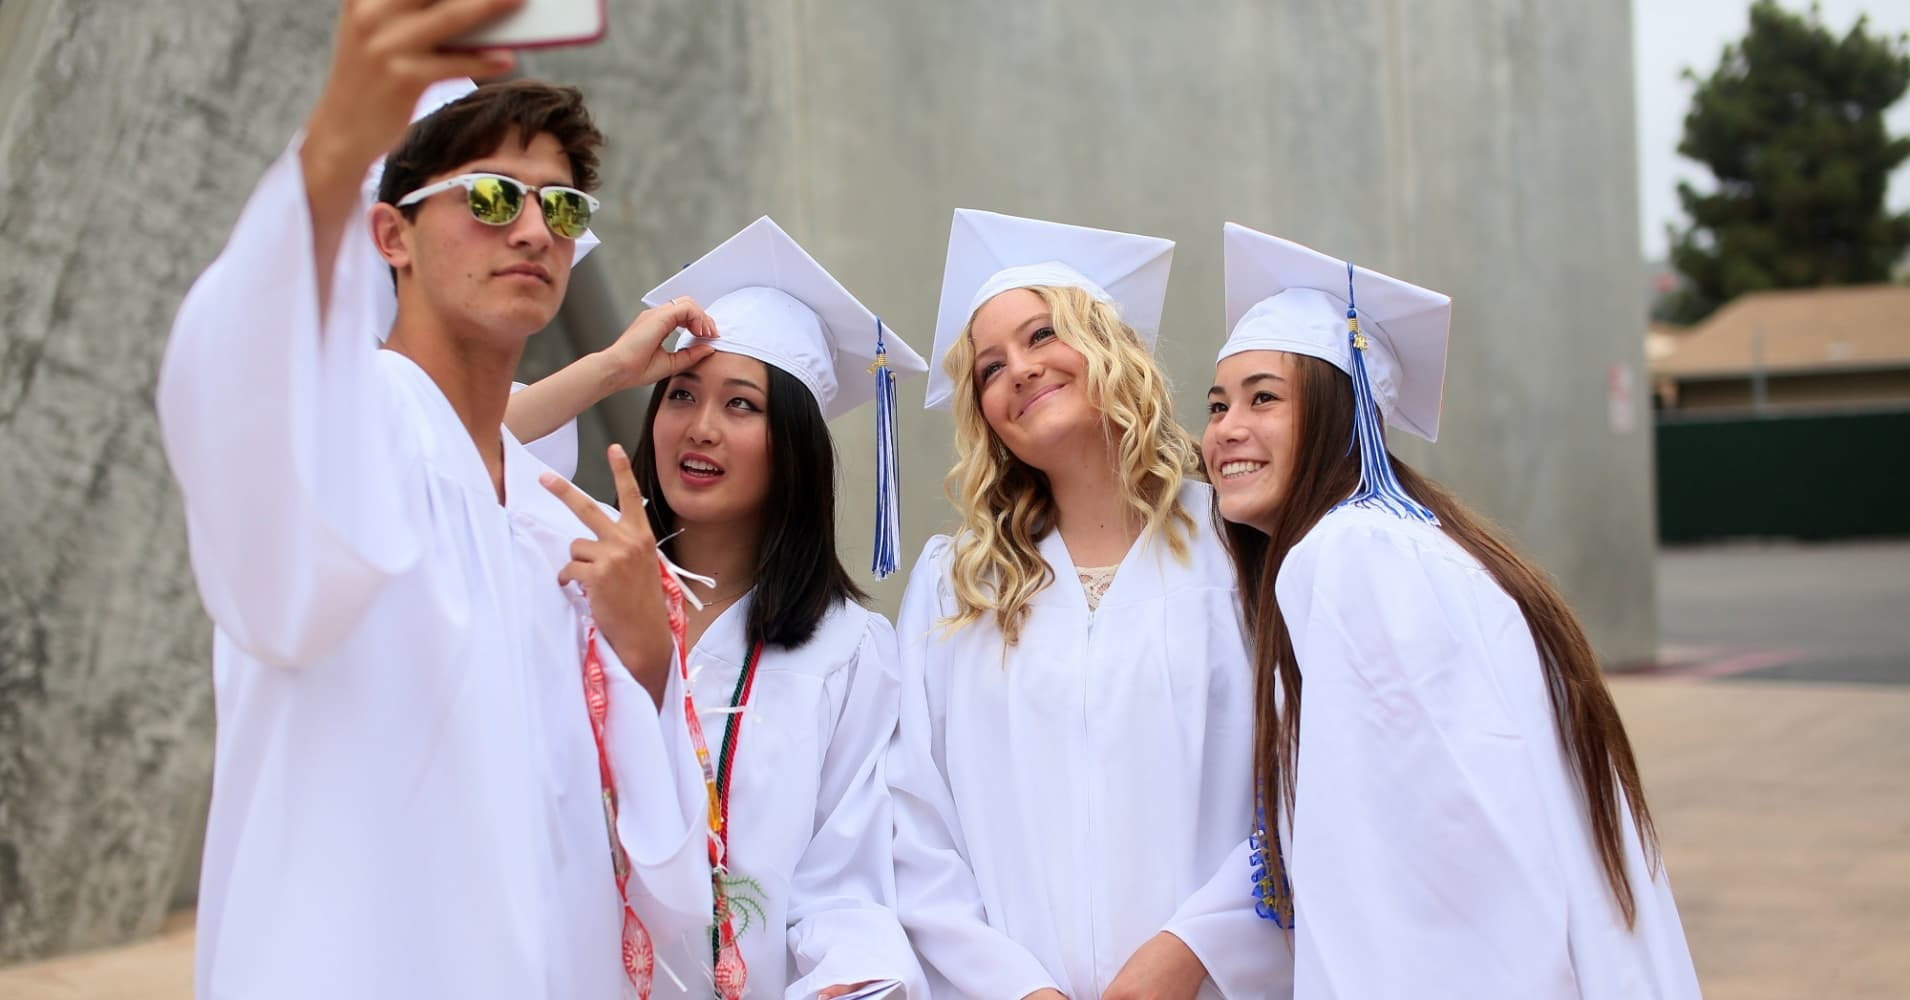 High School students in the class of 2015 in La Jolla, California.